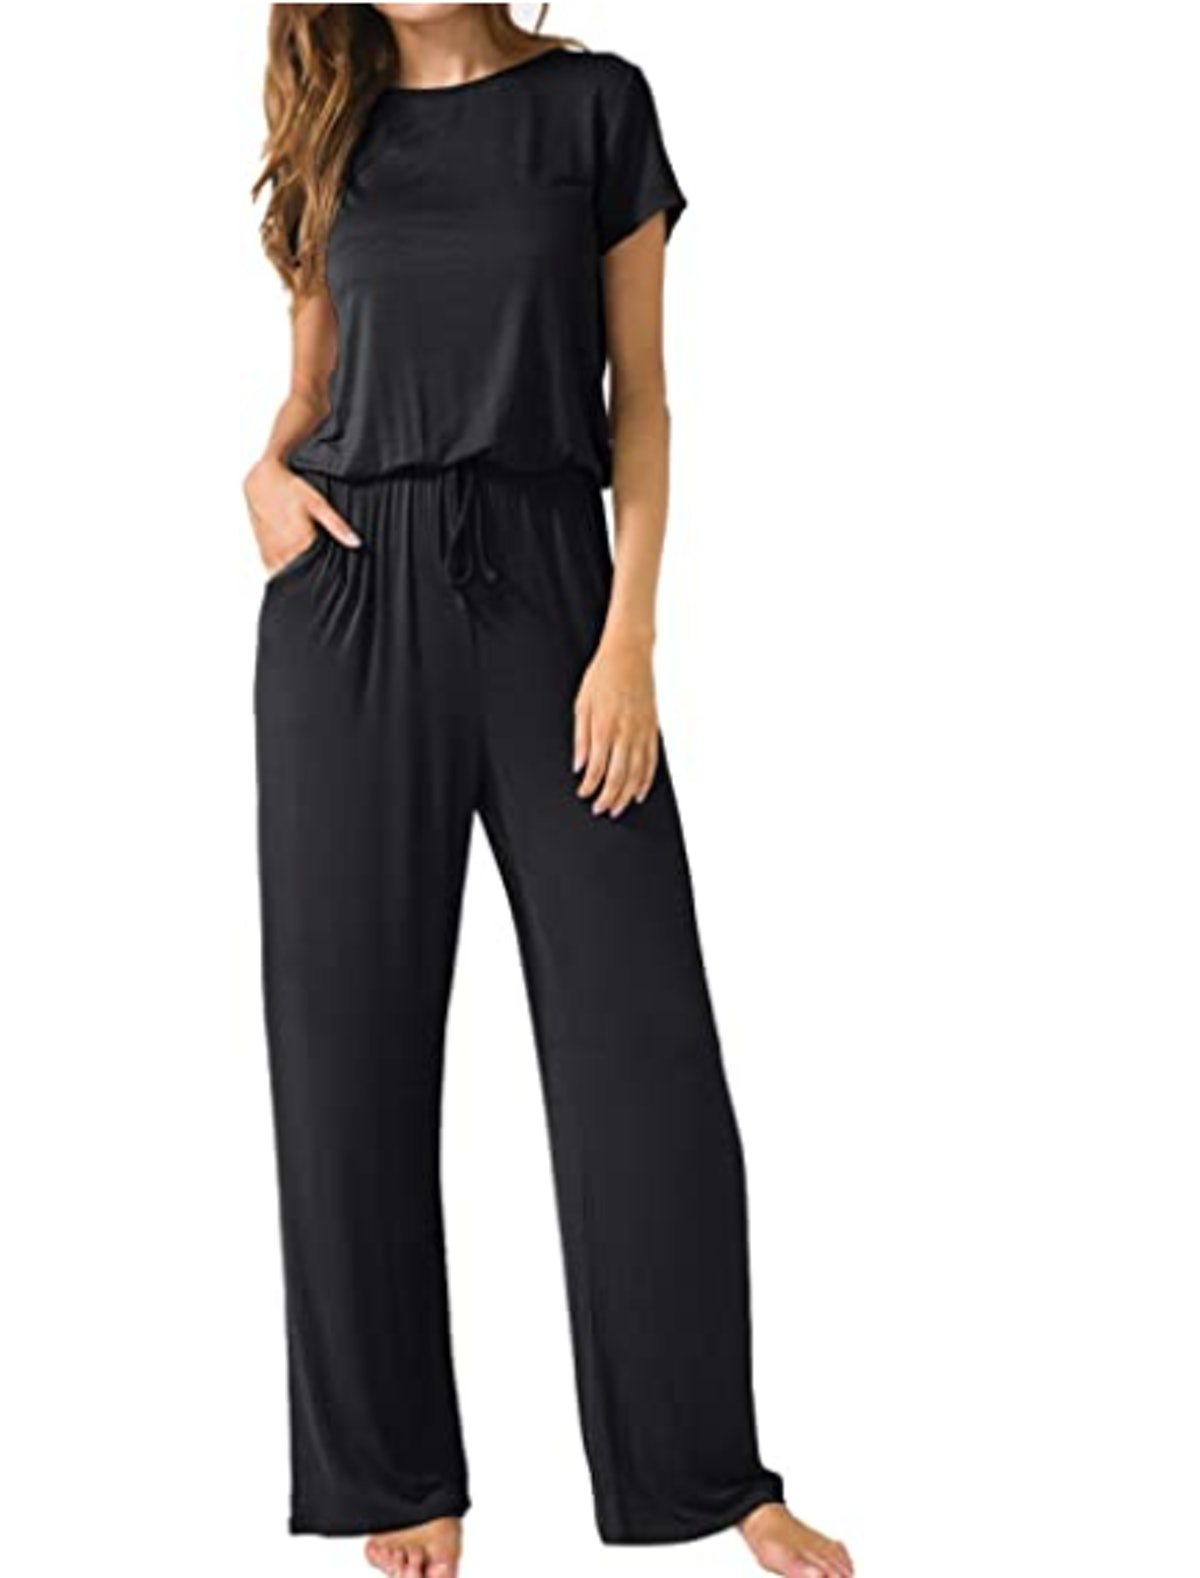 LAINAB Short Sleeve Wide Leg Jumpsuits with Pockets